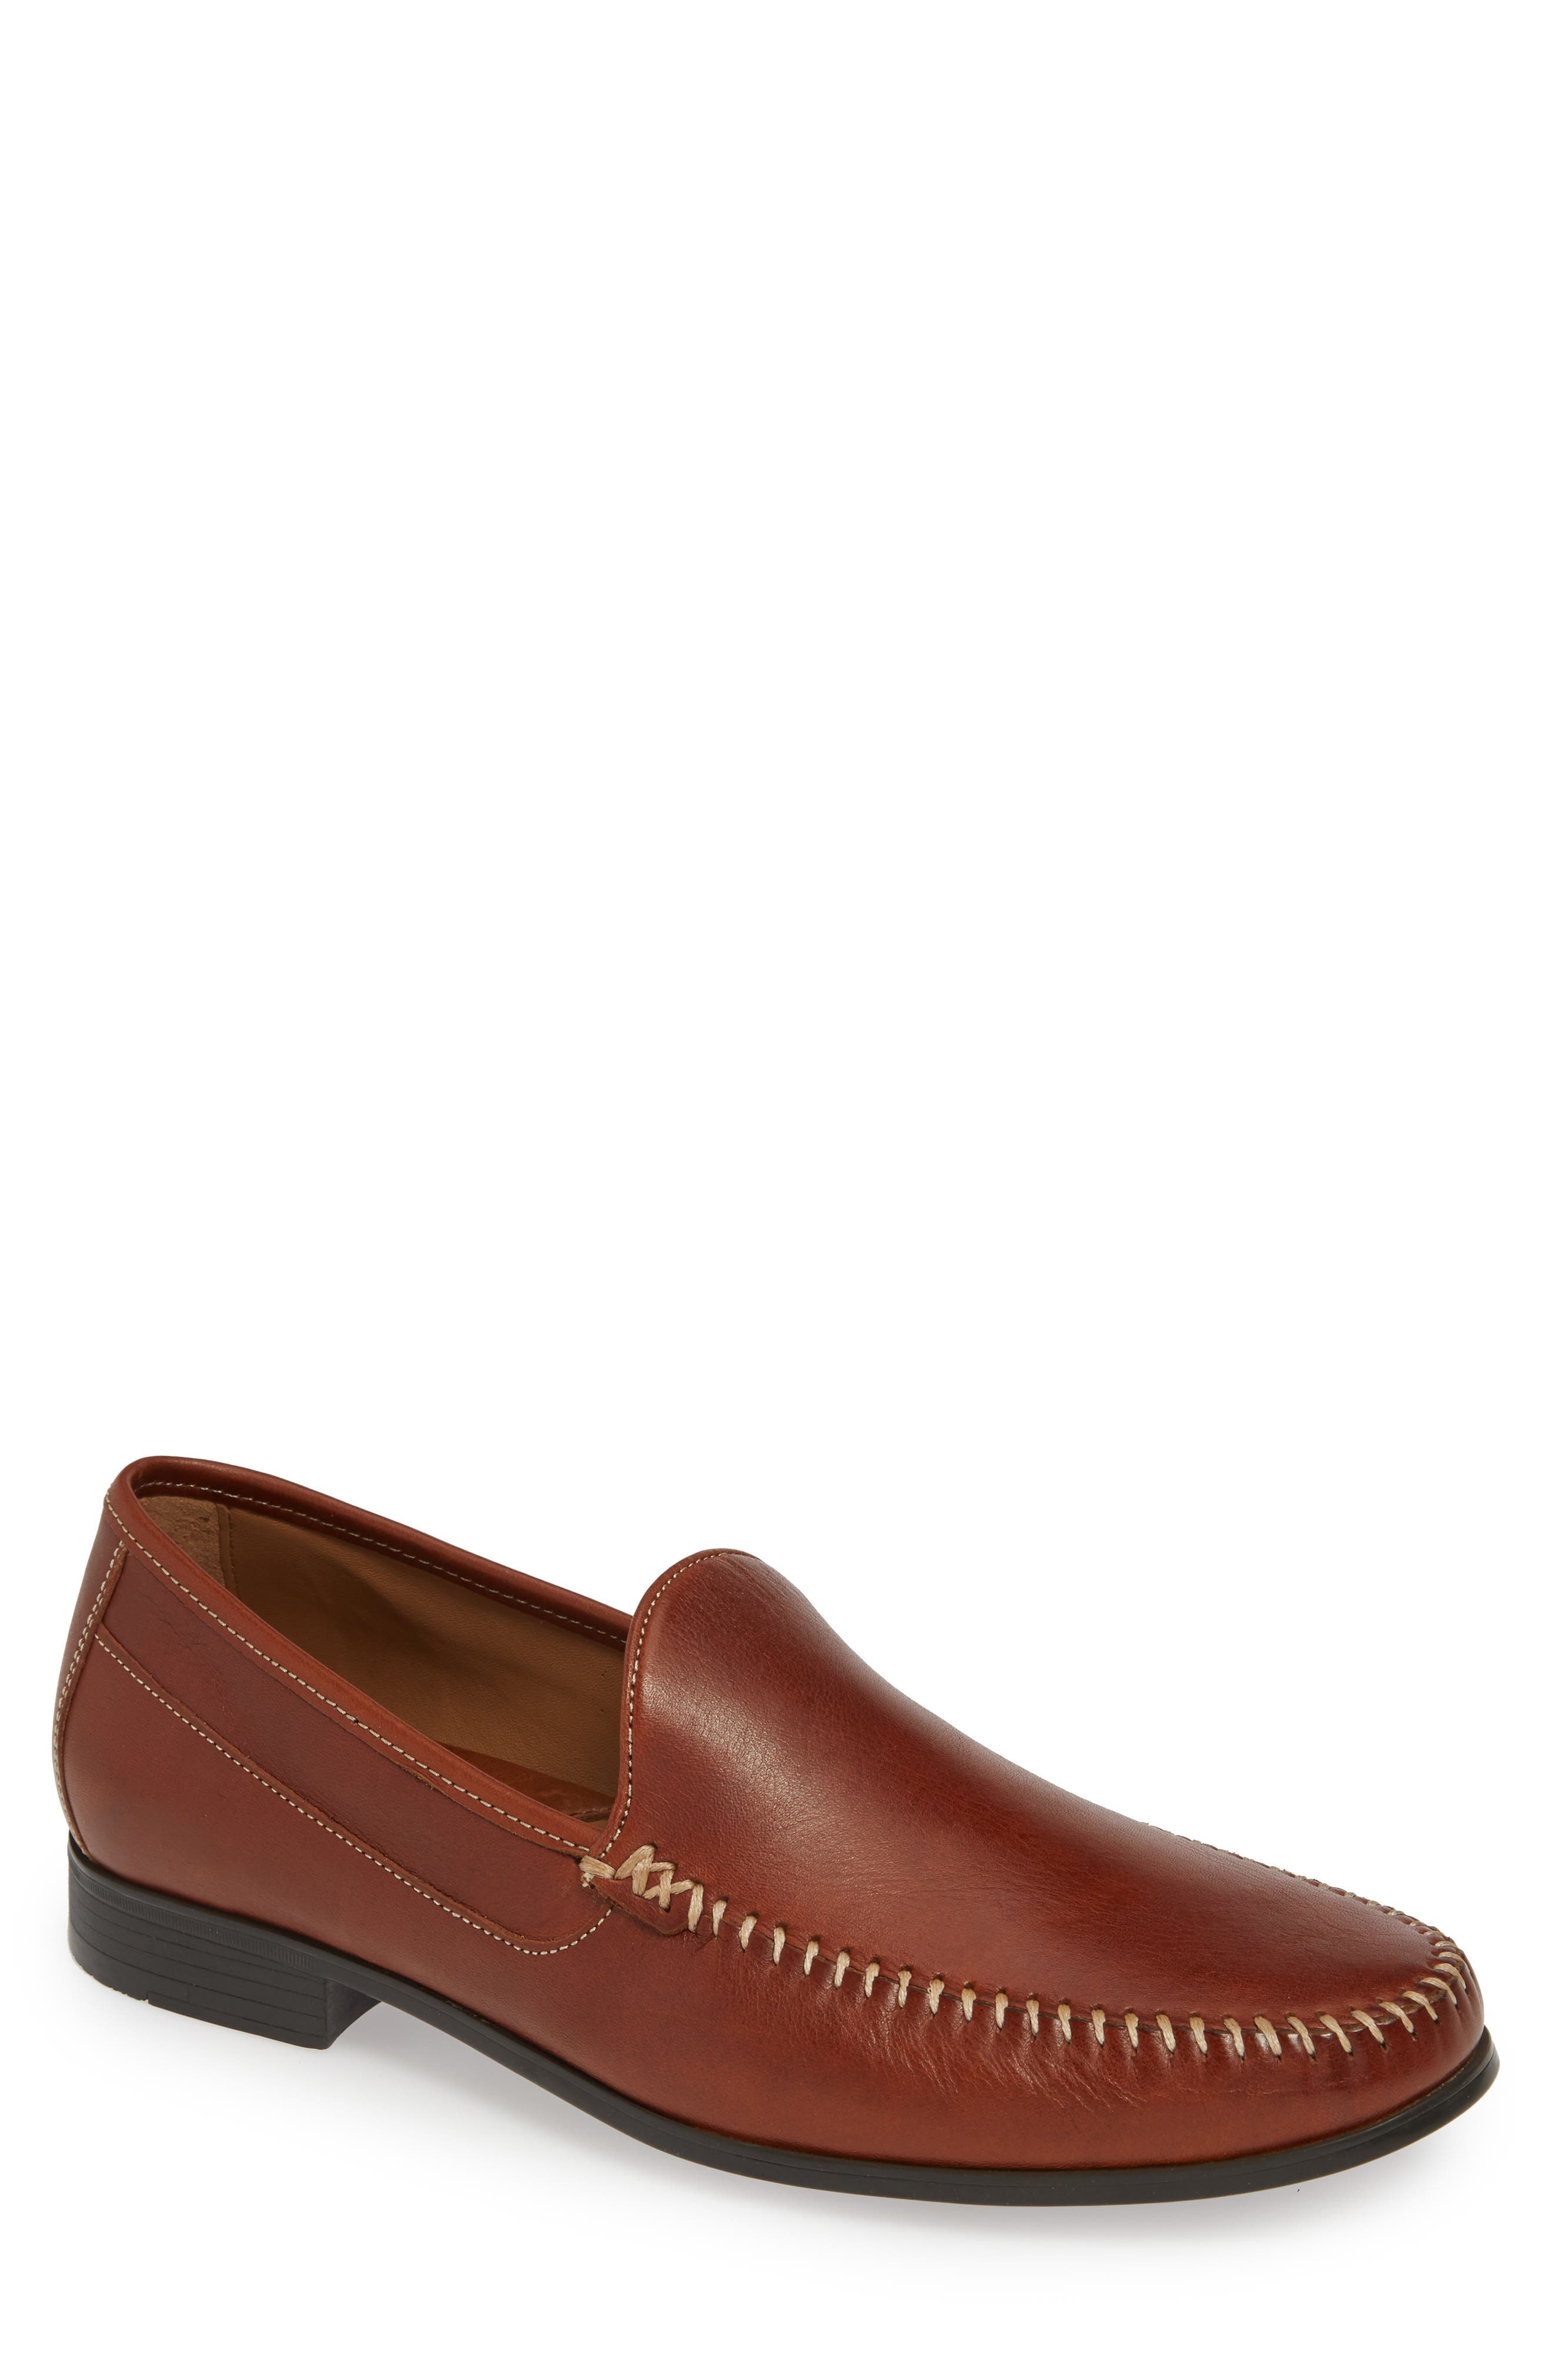 Johnston & Murphy Cresswell Venetian Loafer- Brown